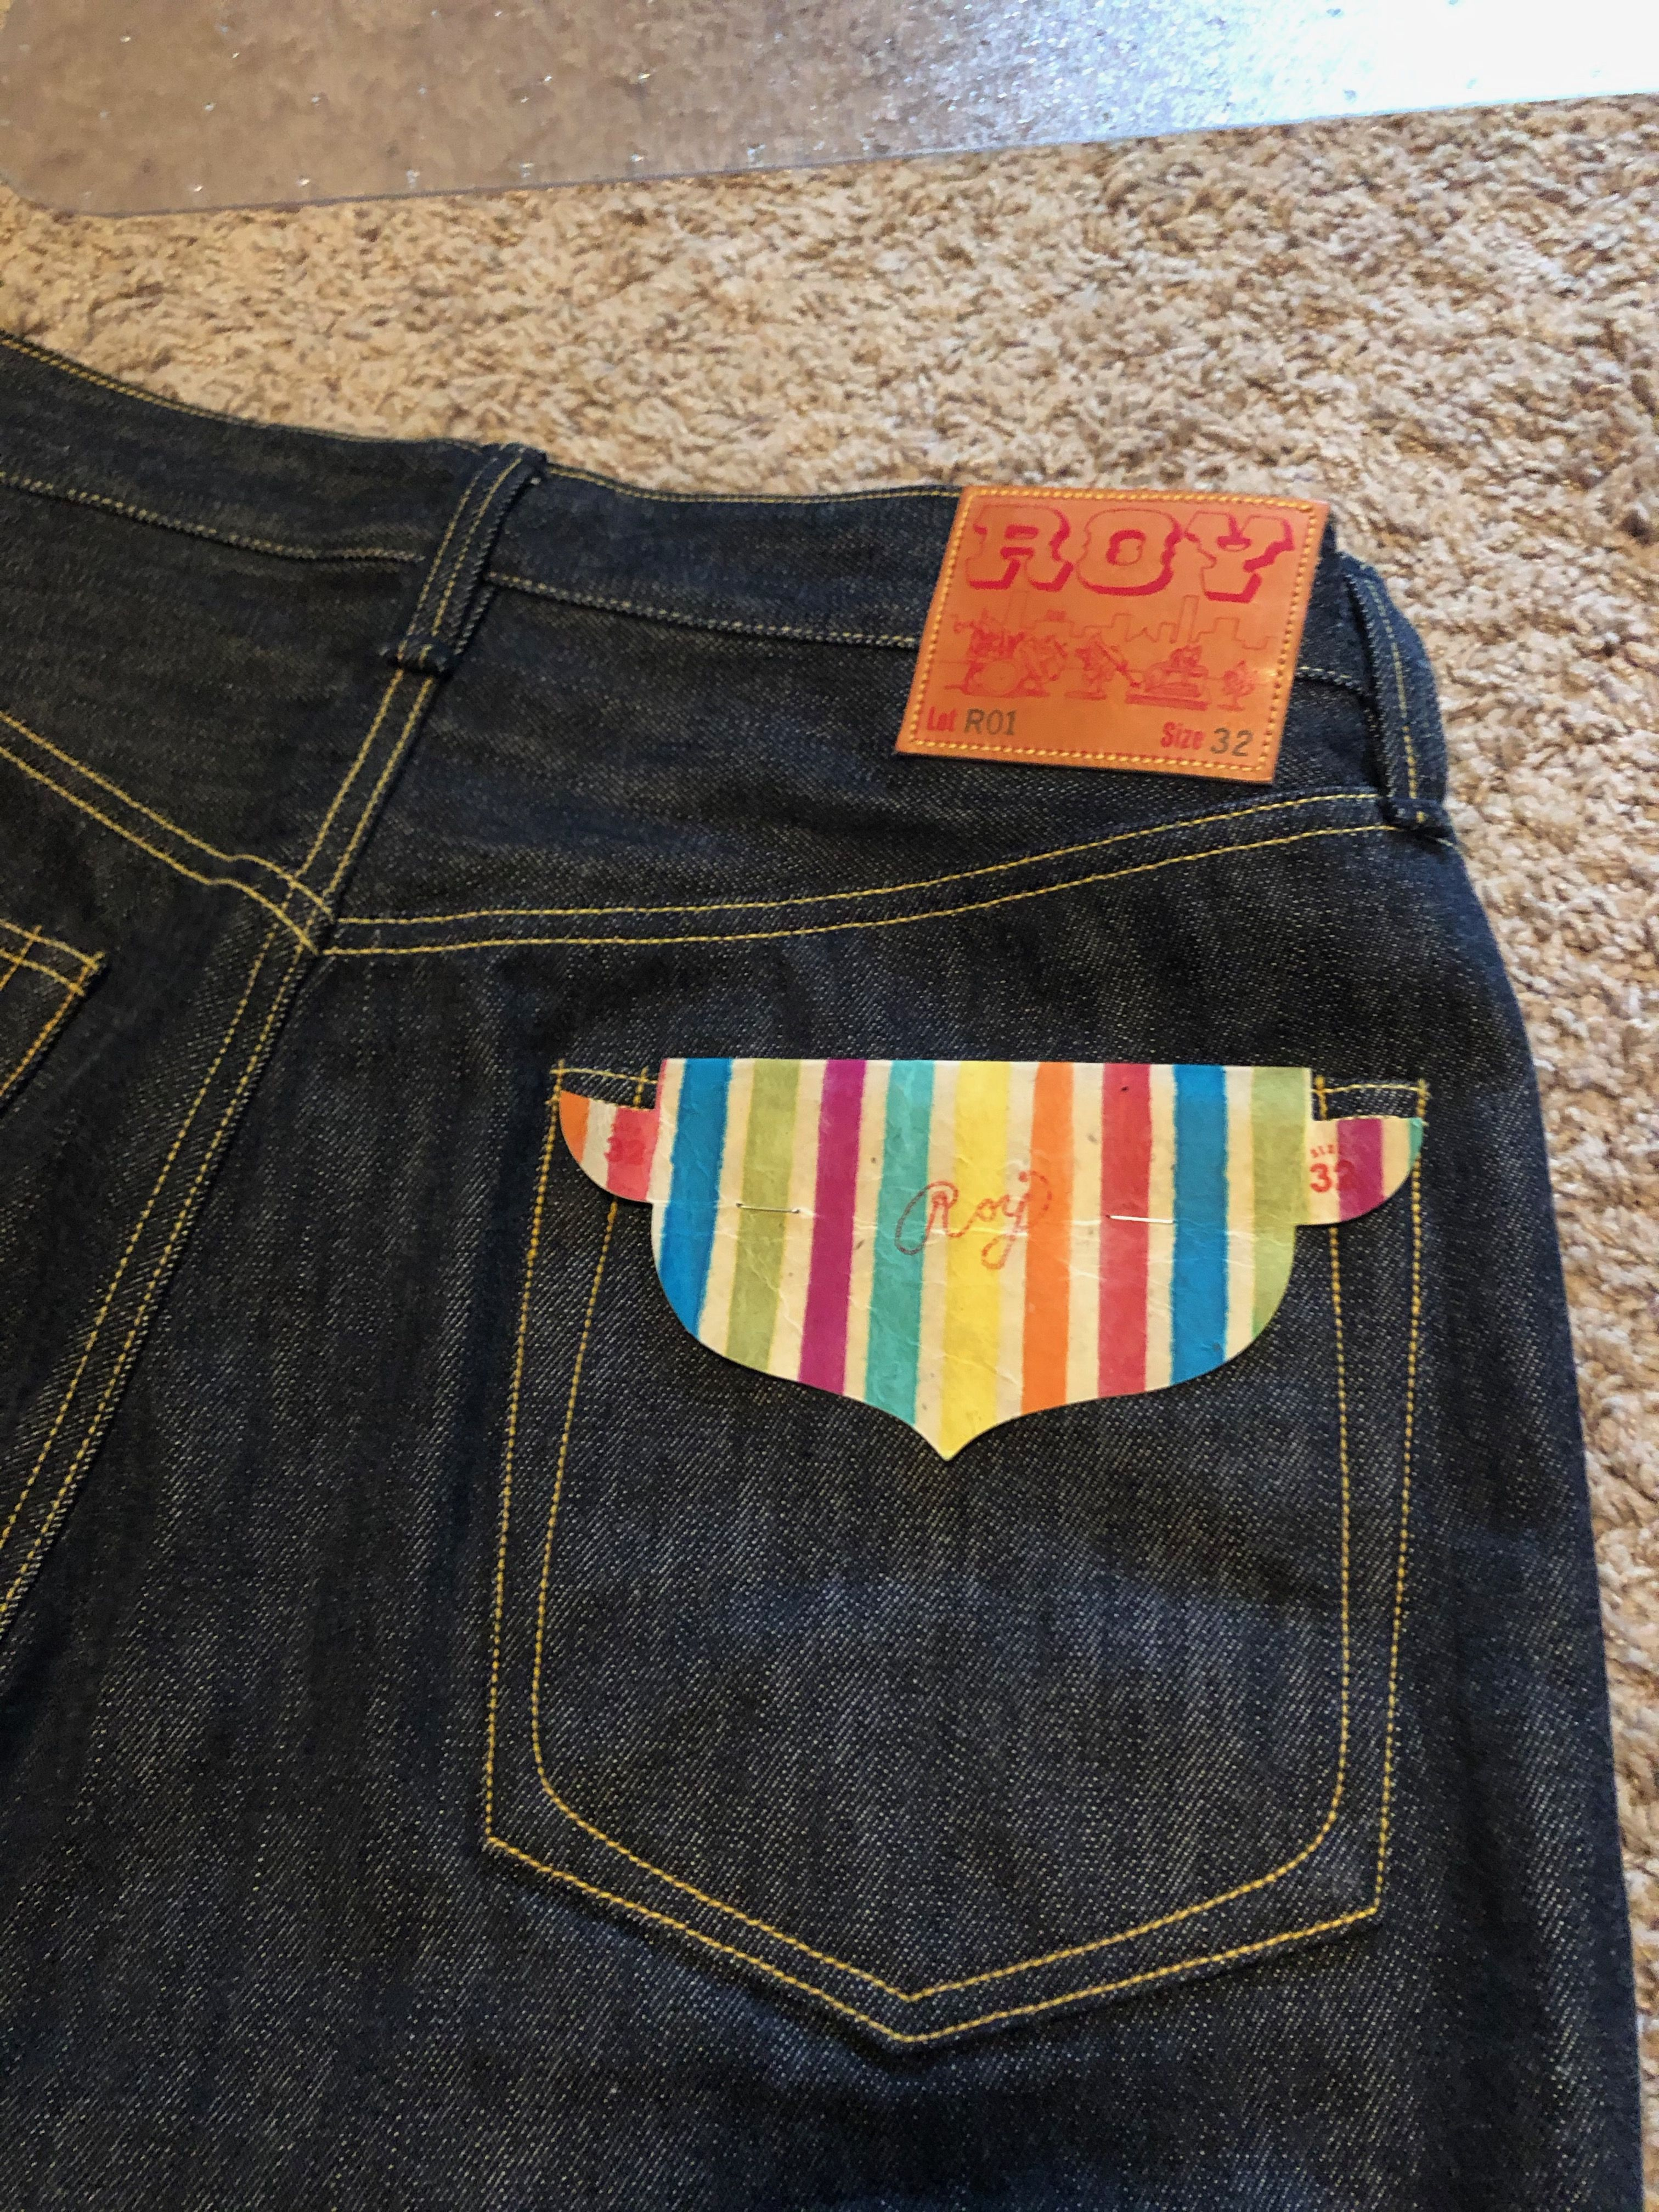 Roy Denim Very Nice Pocket Bag Jeans 32 unhemmed